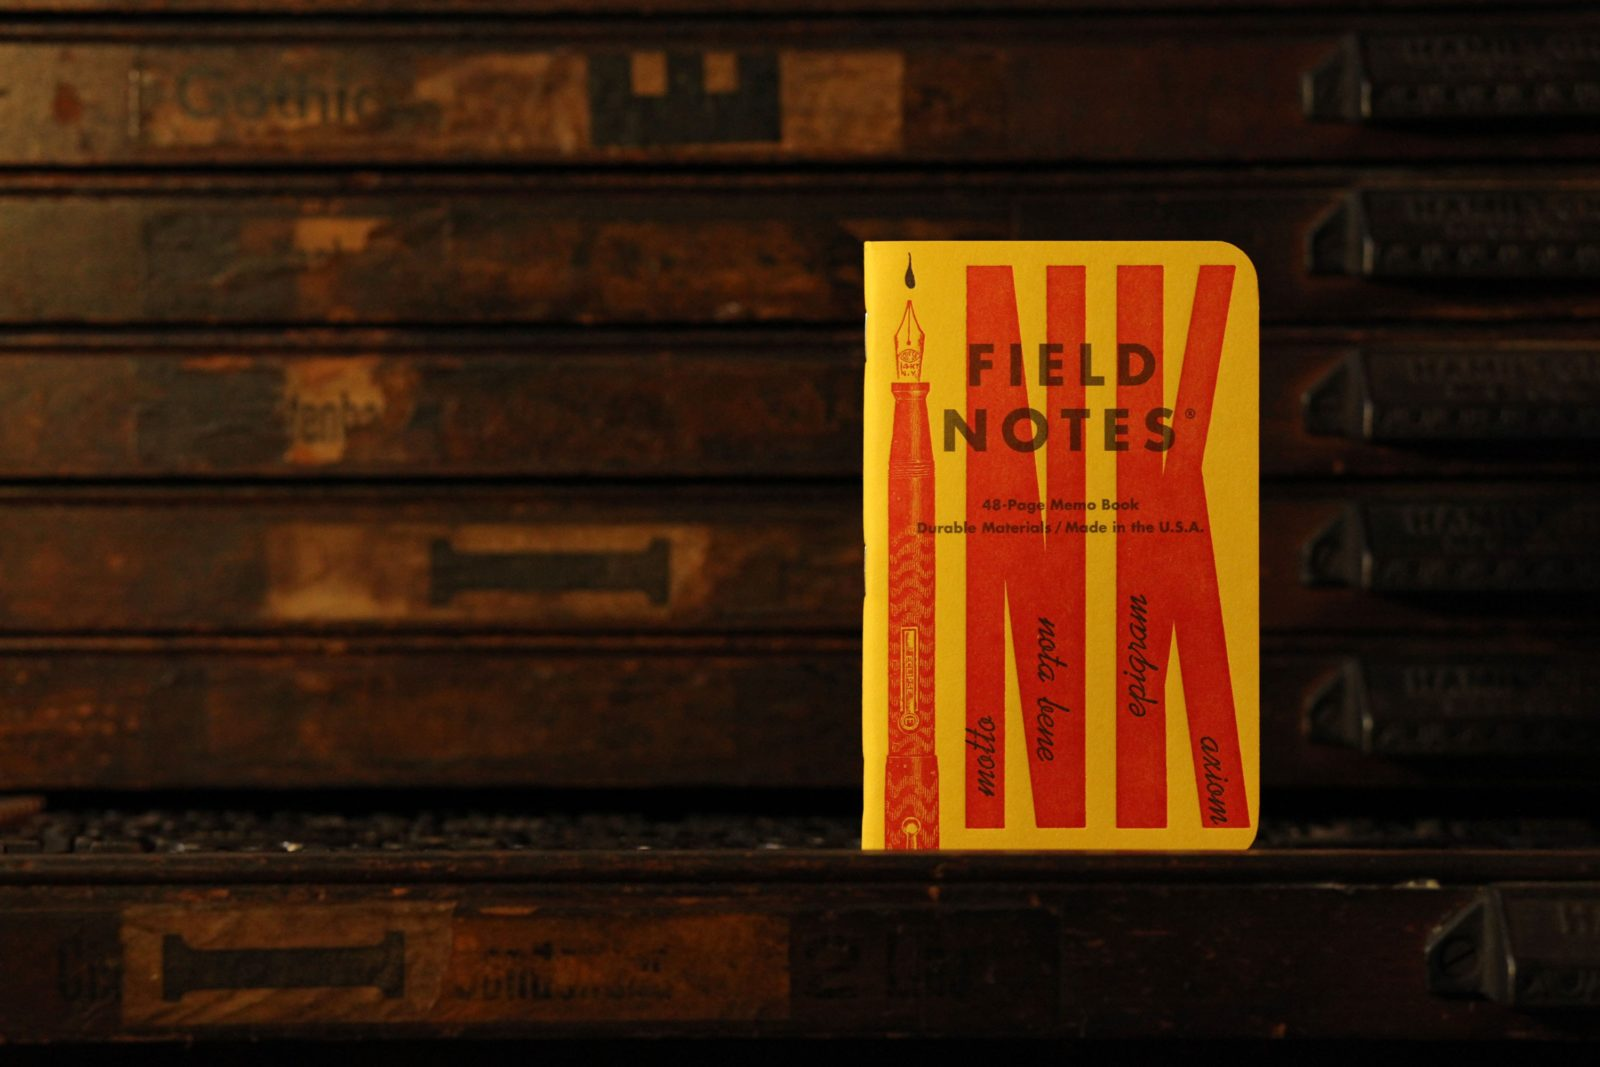 Field Notes Letterpress Blog Image